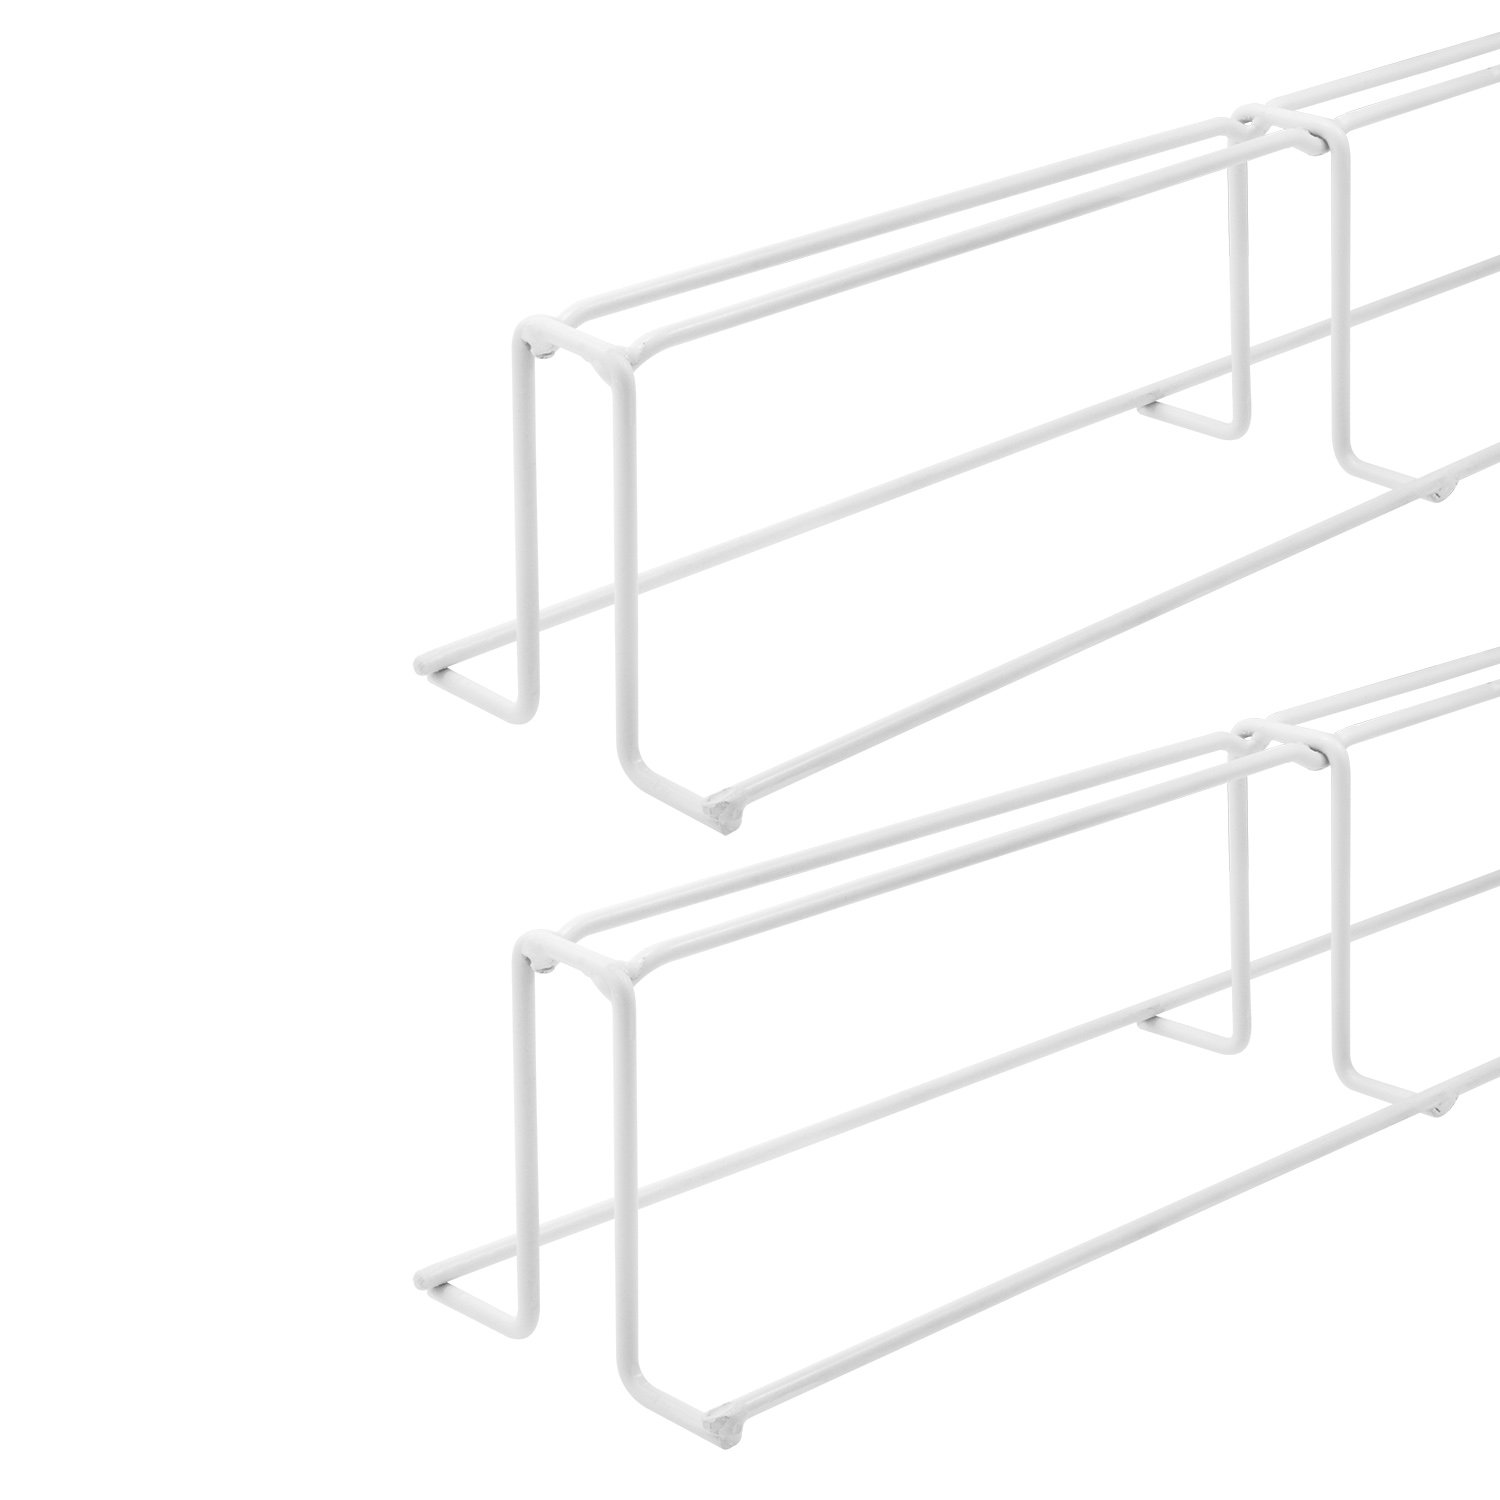 Garage Storage Rack System, Ceiling Mounted, White, 1 Set White Prime-Line Products KD 16090